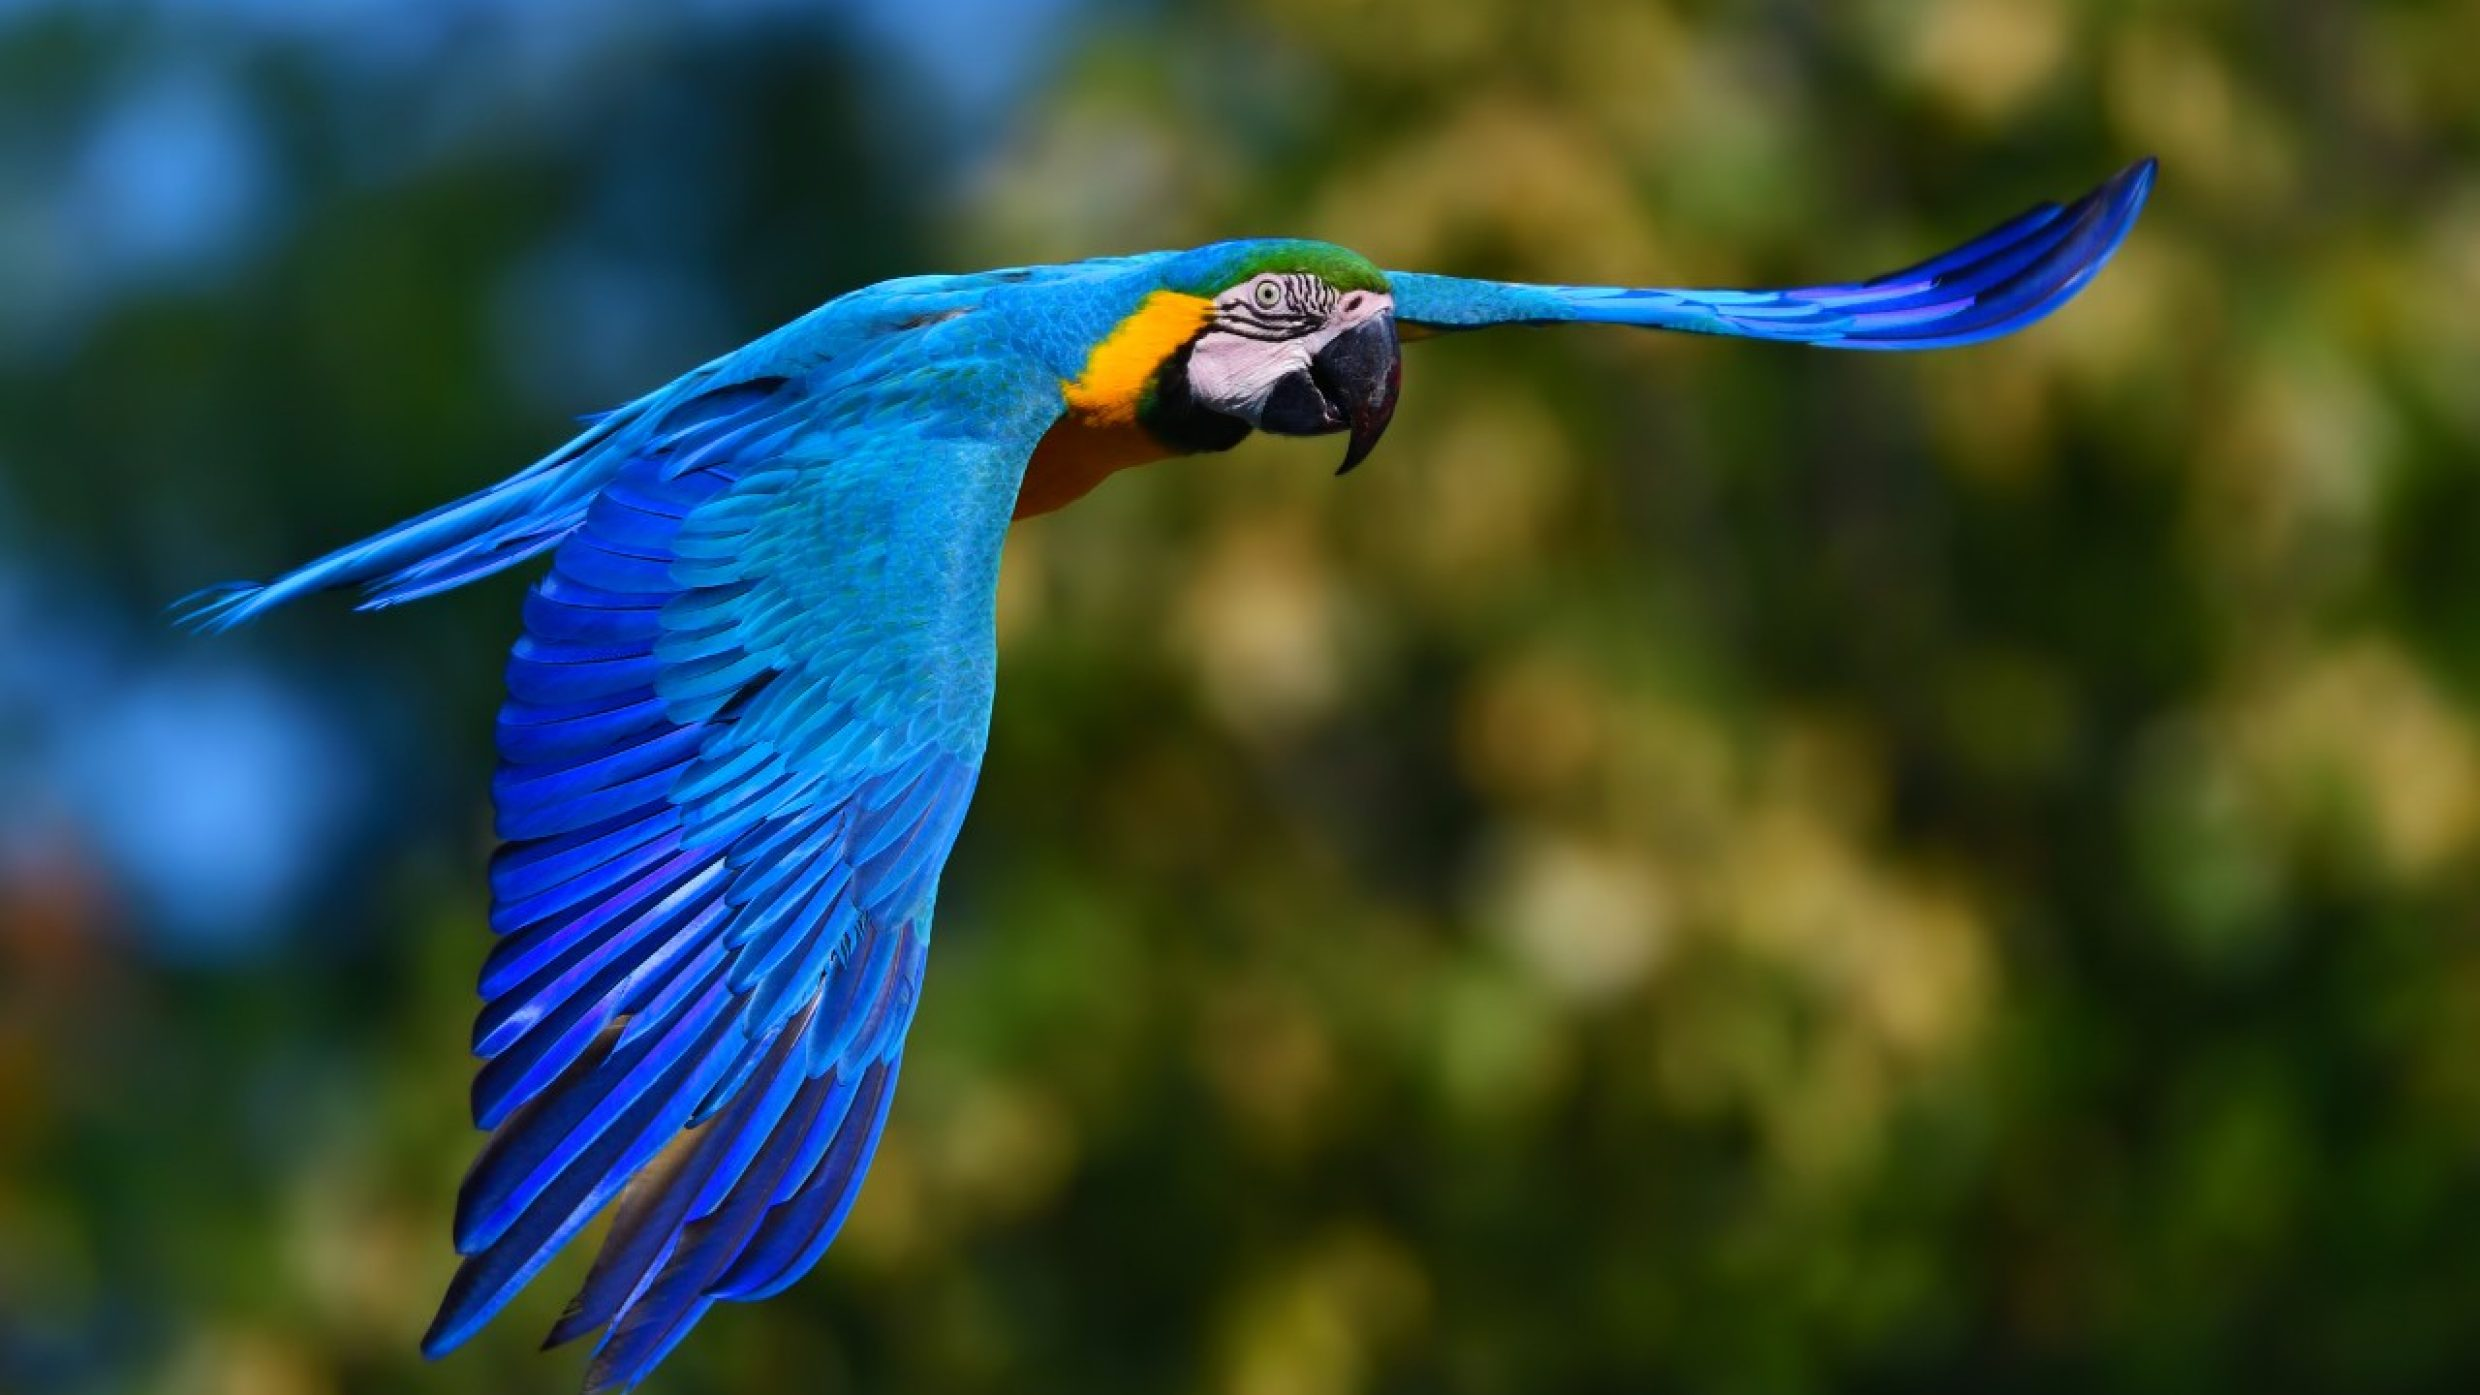 Parrots are the only birds that can live longer than people, with a life expectancy of up to 100 years. The oldest blue and yellow macaw on record even lived to 104 in England.